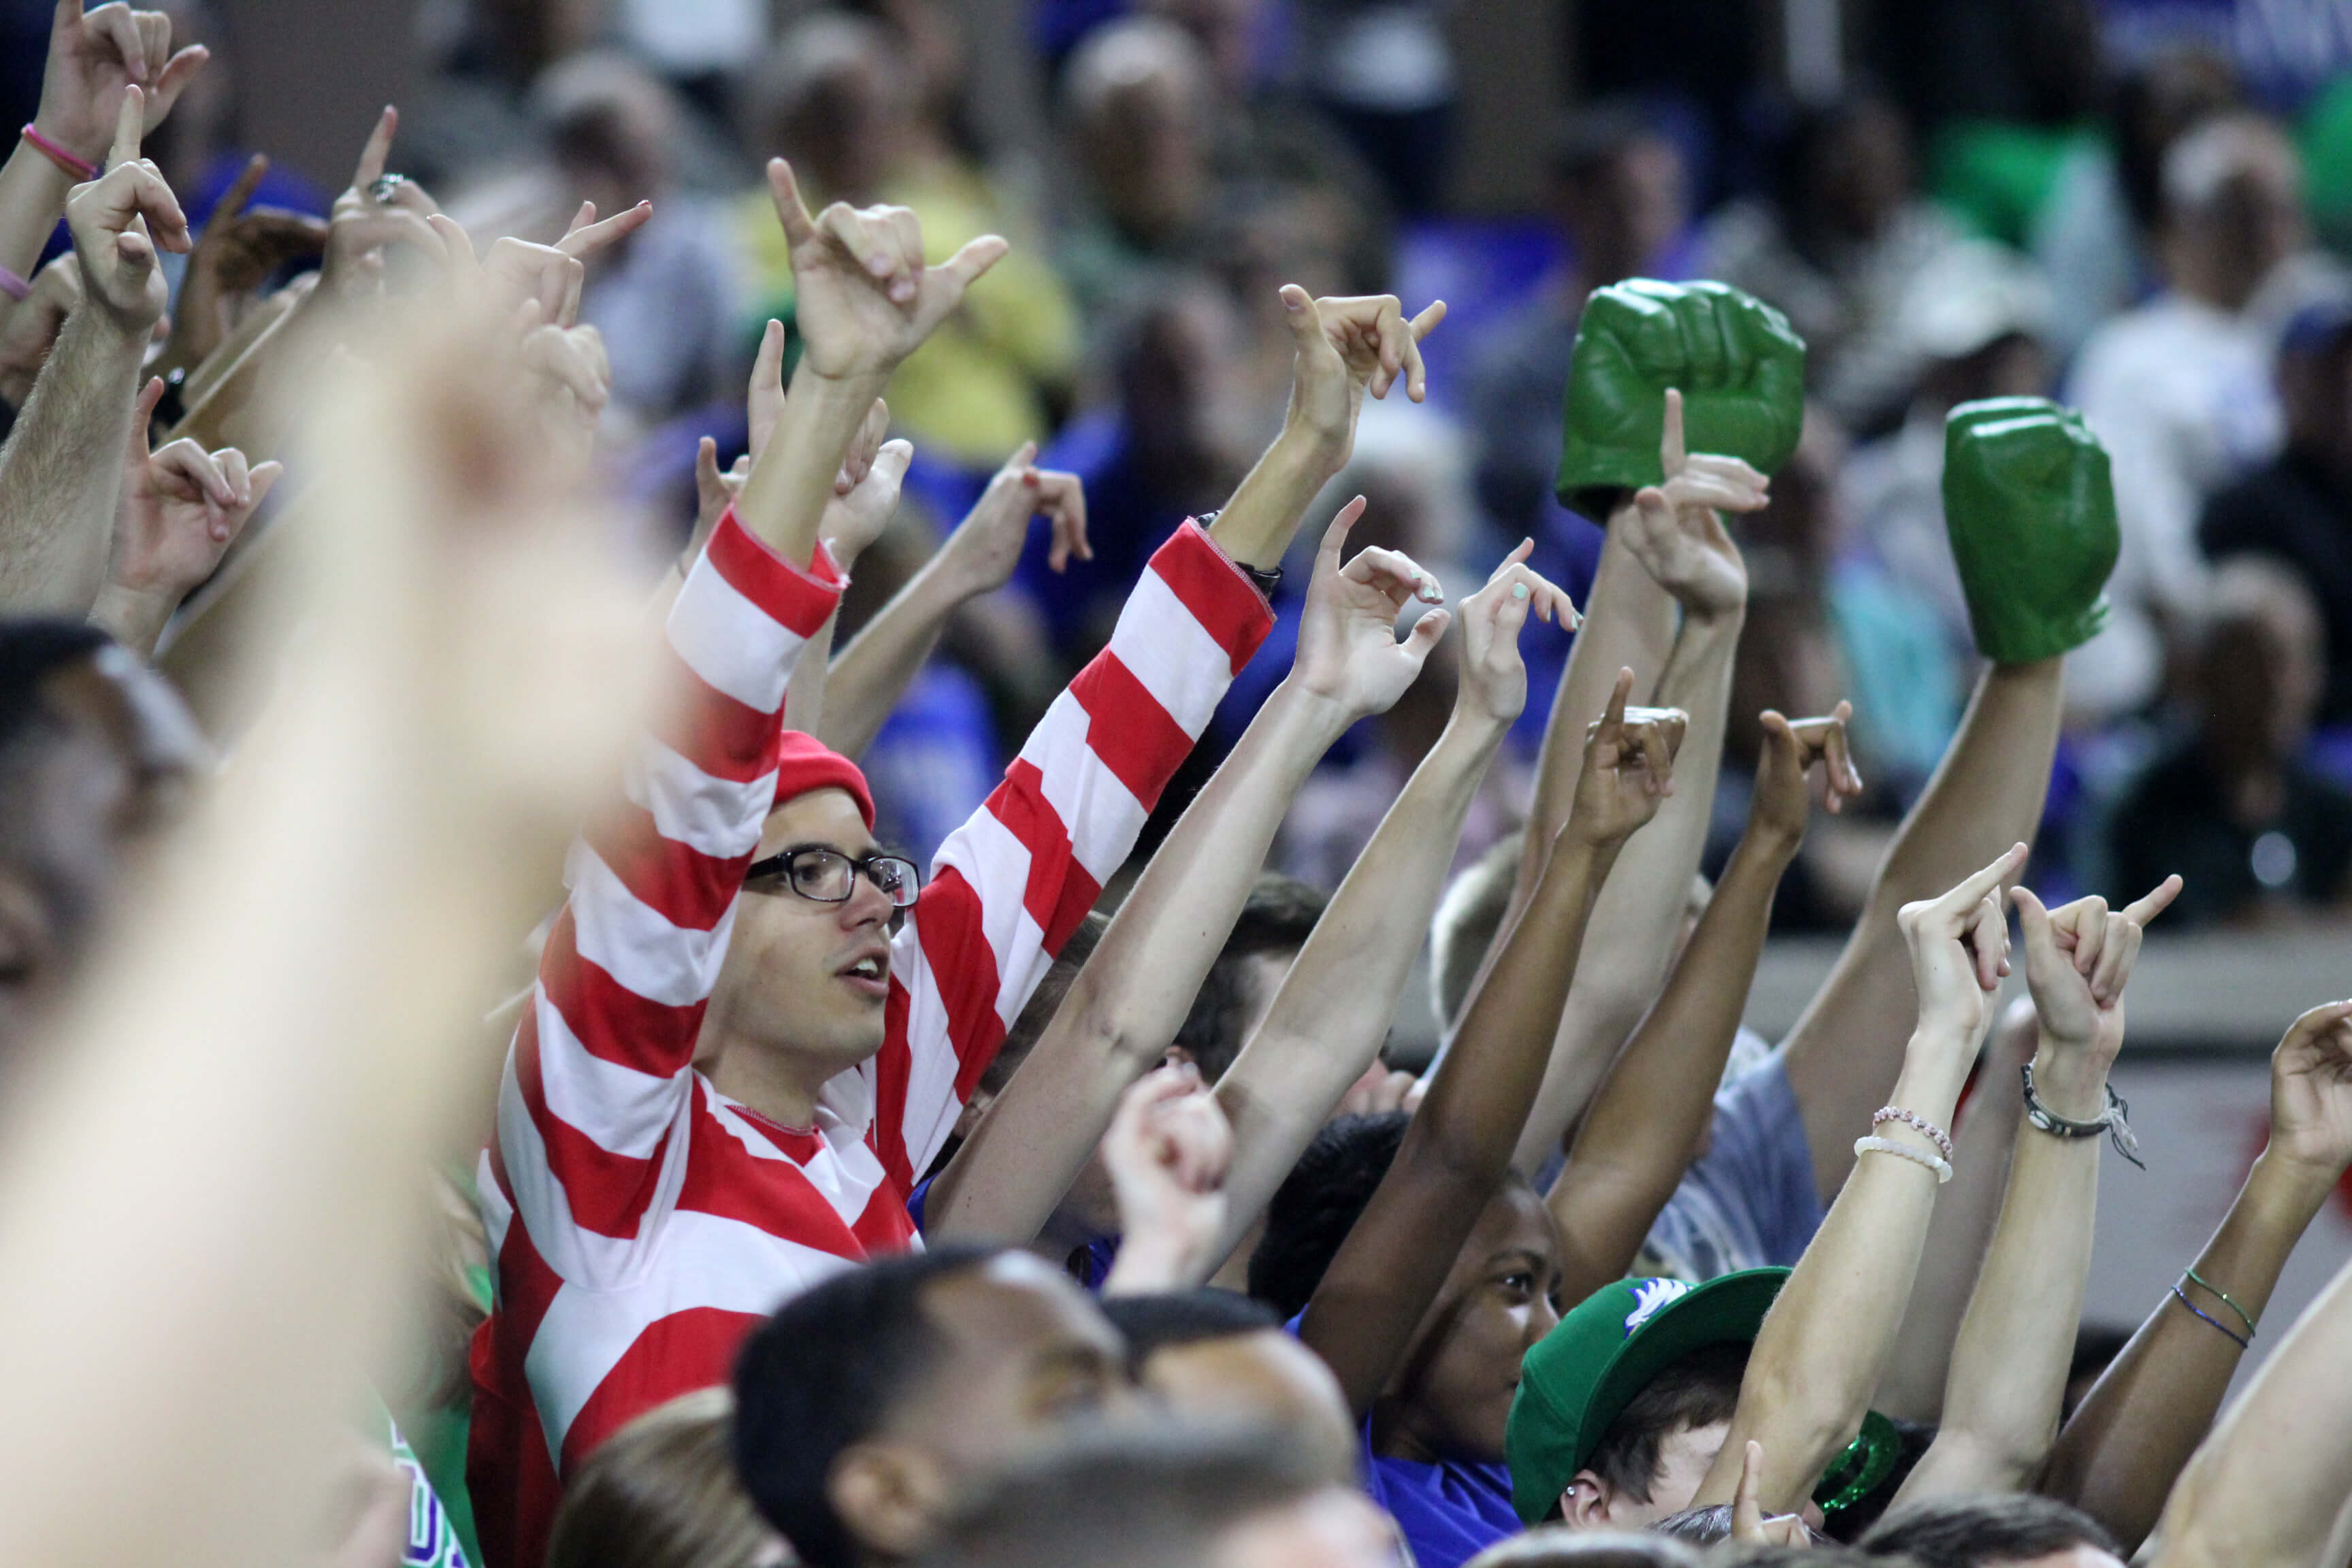 Lack of funding keeps FGCU Dirty Birds from First Four, ready for UNC